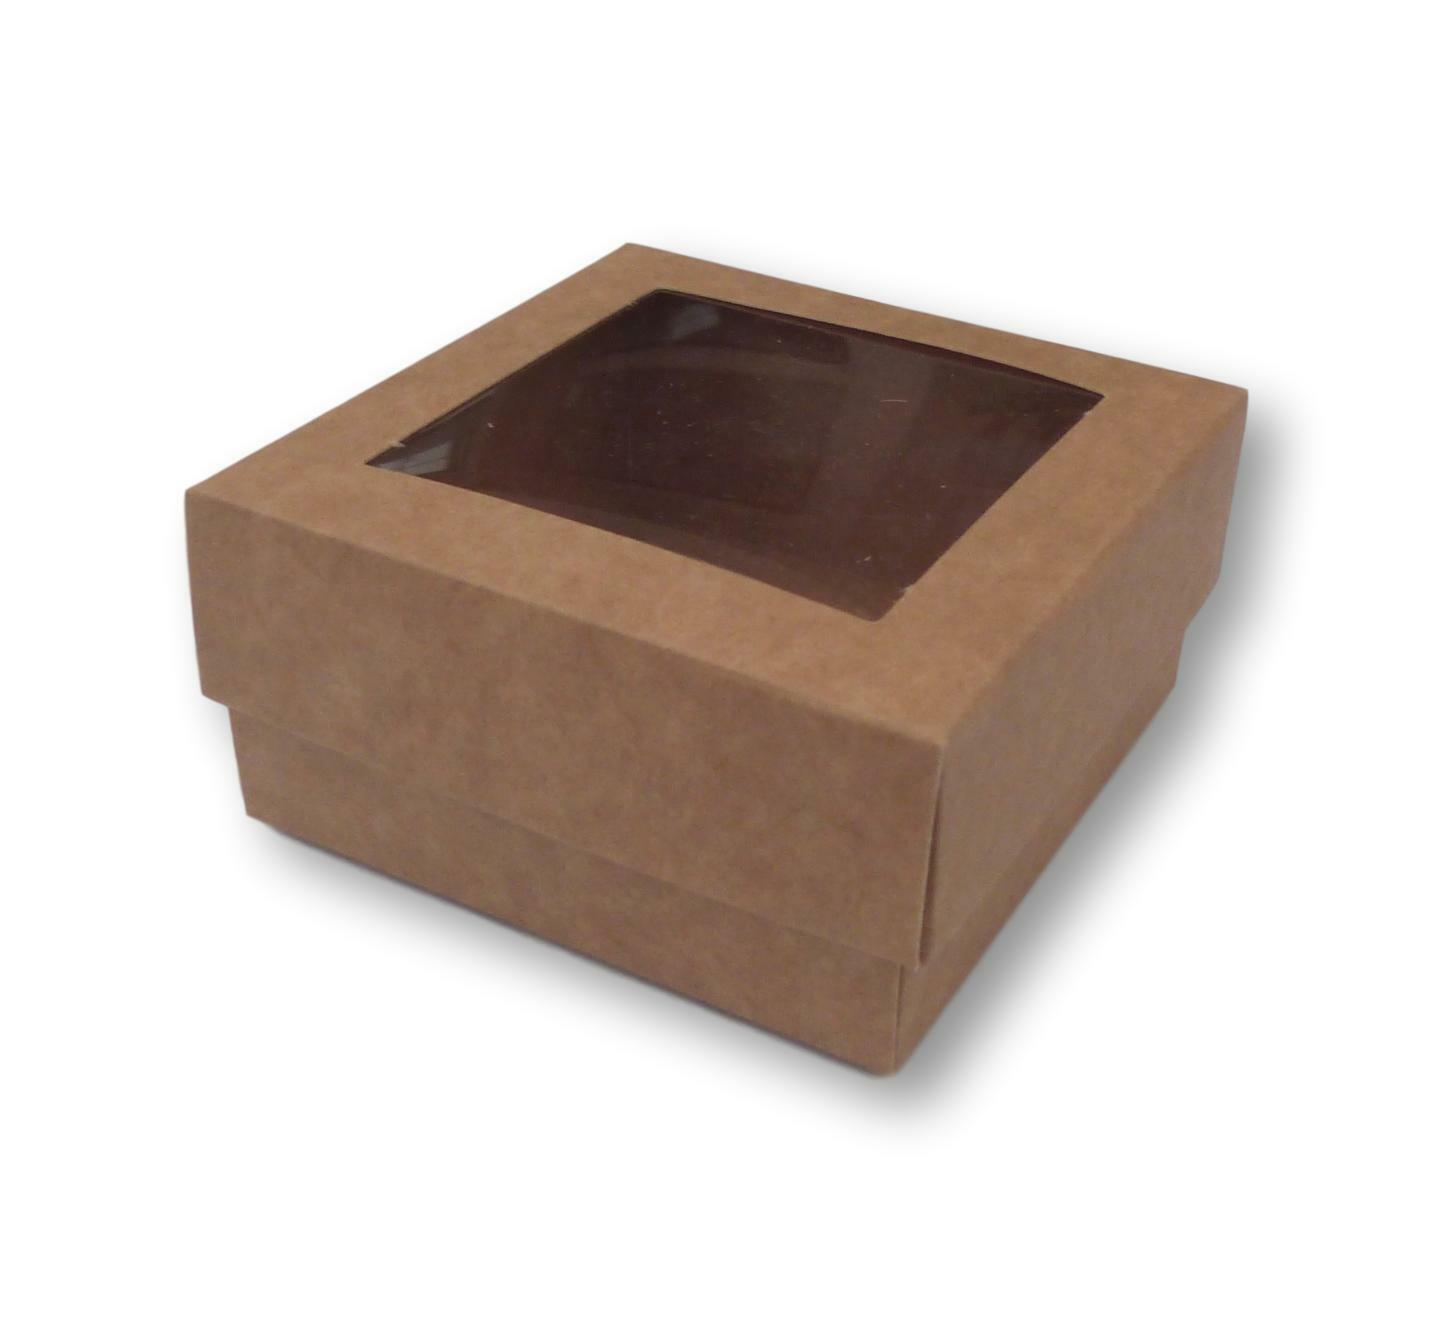 CAKES JEWELLERY ETC 3 x 3 INCH BOXES WITH WINDOW LID GIFTS